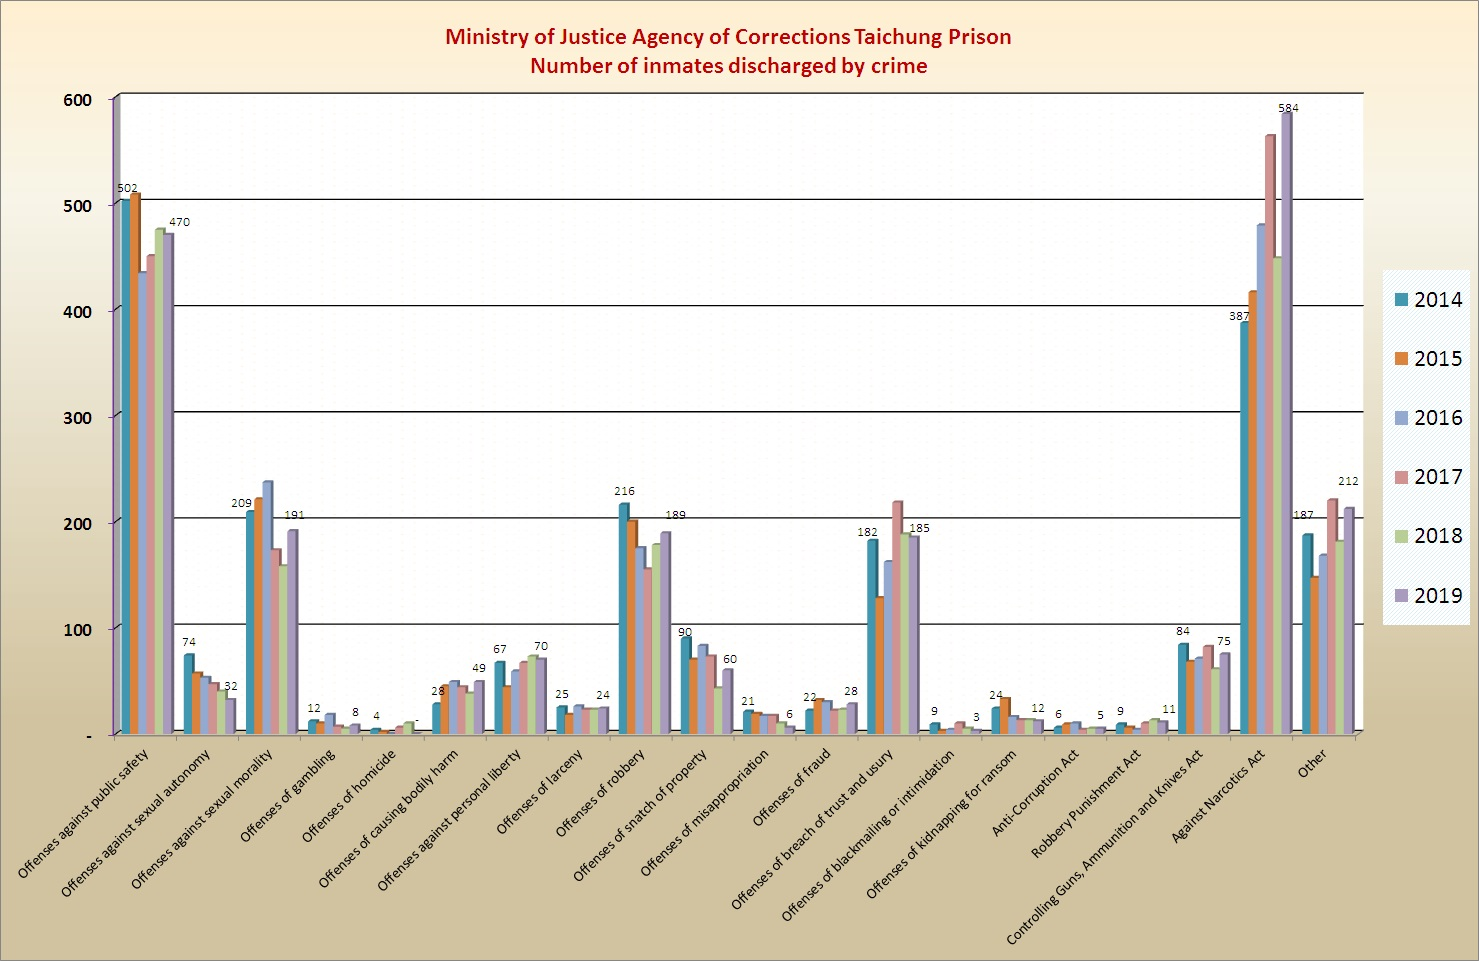 Chart of Number of inmates discharged by crime